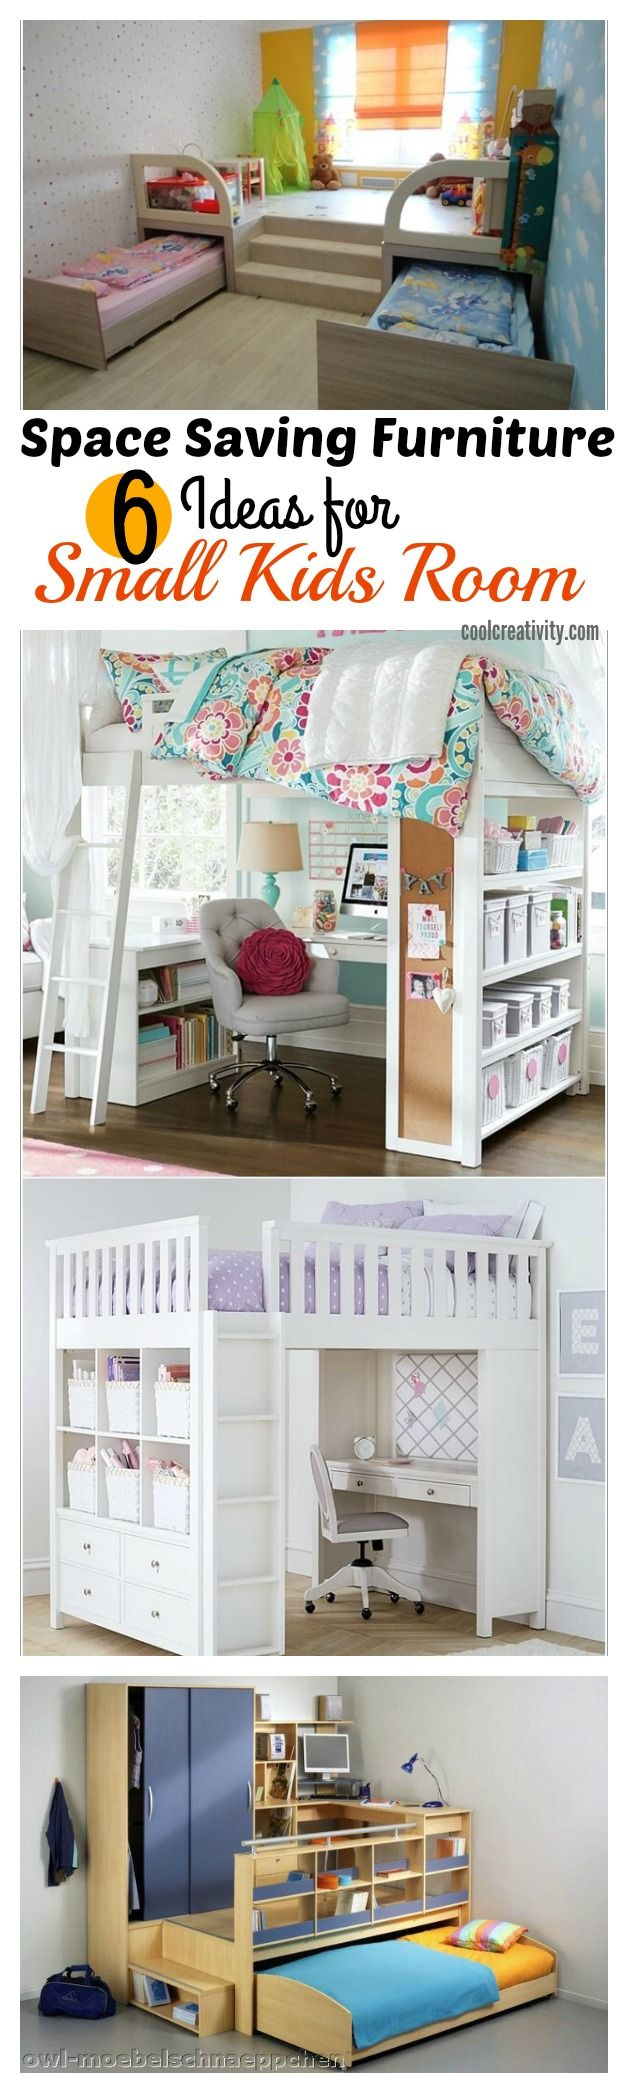 6 Space Saving Furniture Ideas for Small Kids Room & 6 Space Saving Furniture Ideas for Small Kids Room | to build for ...